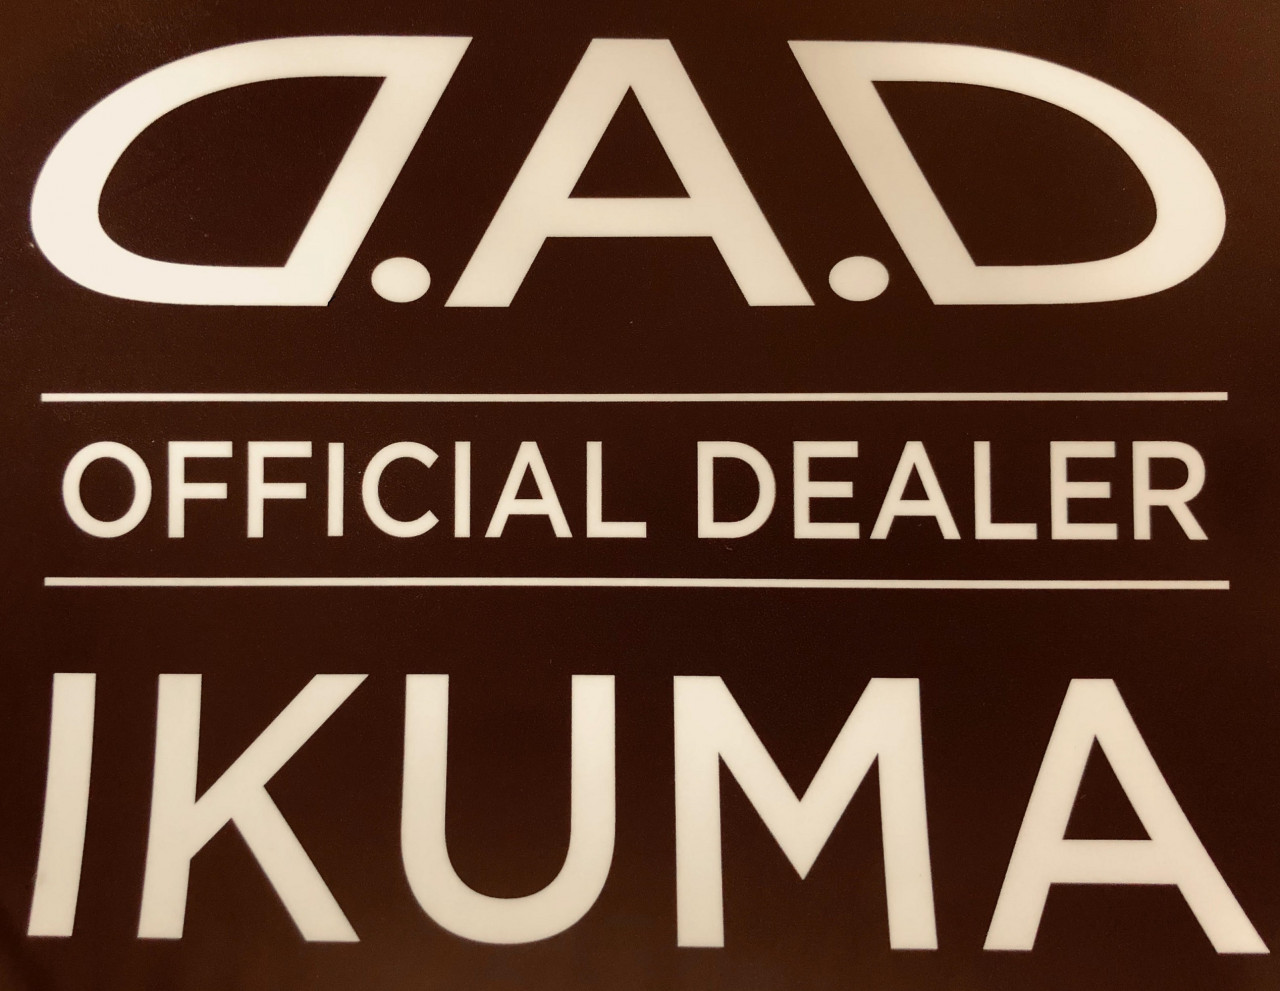 D.A.D OFFICIAL DEALER IKUMA